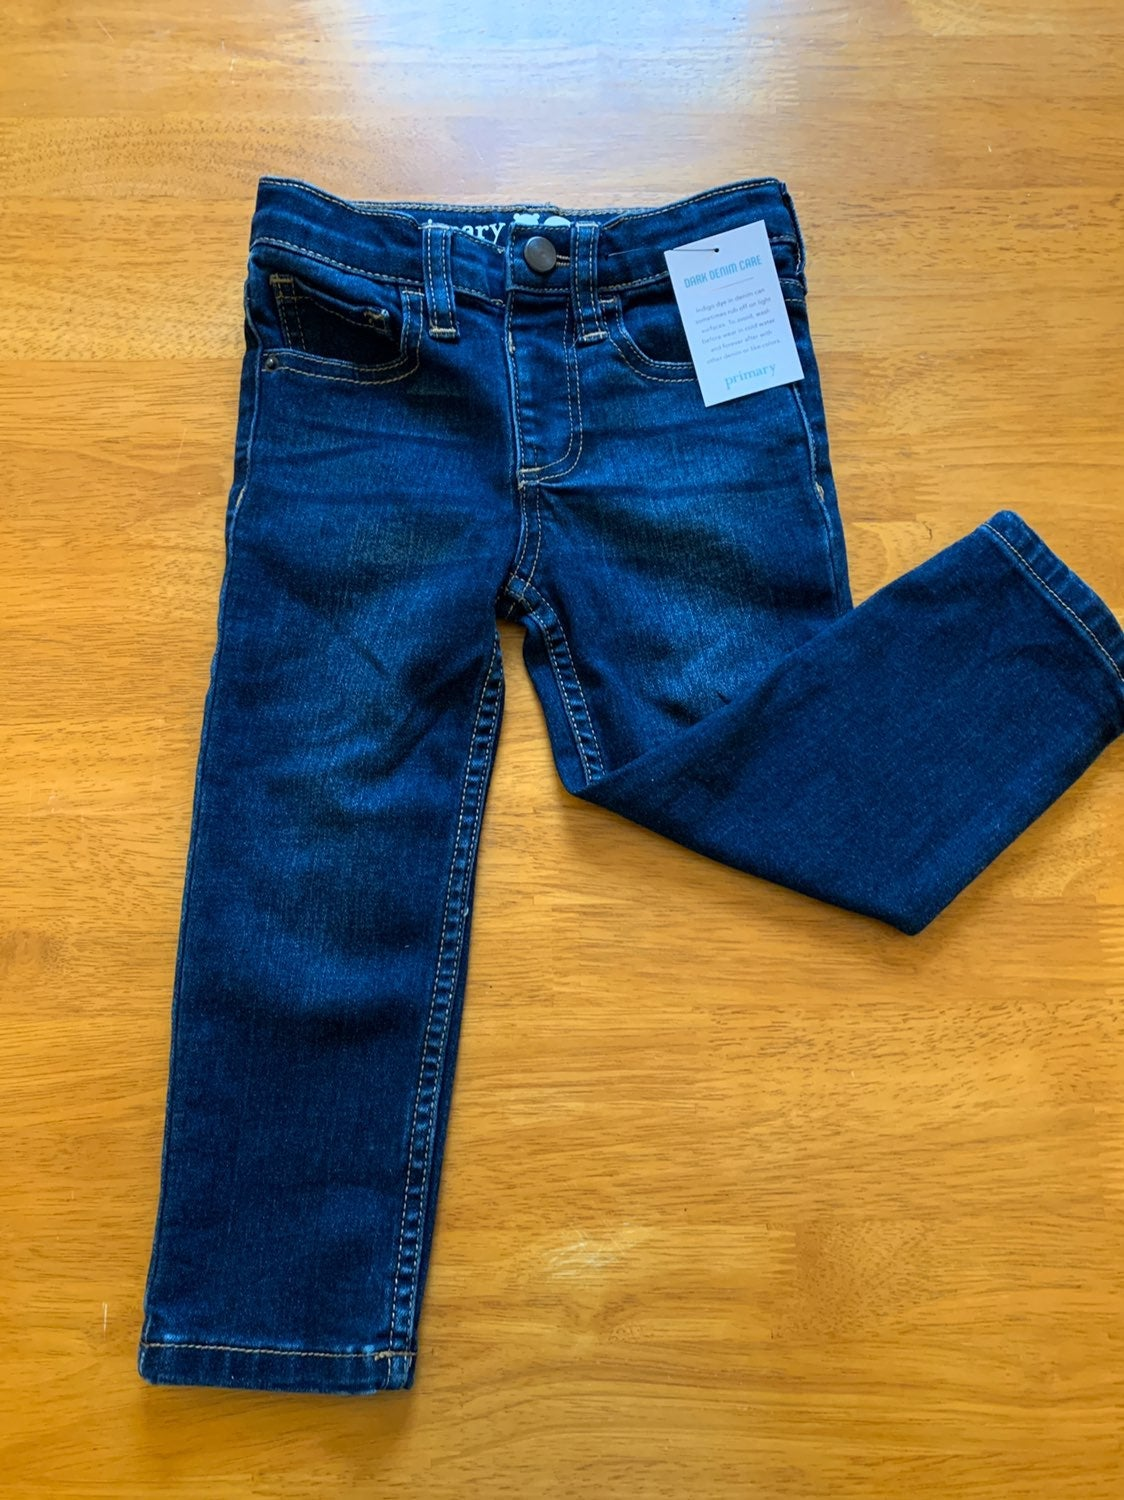 NWT Primary Jeans Size 2